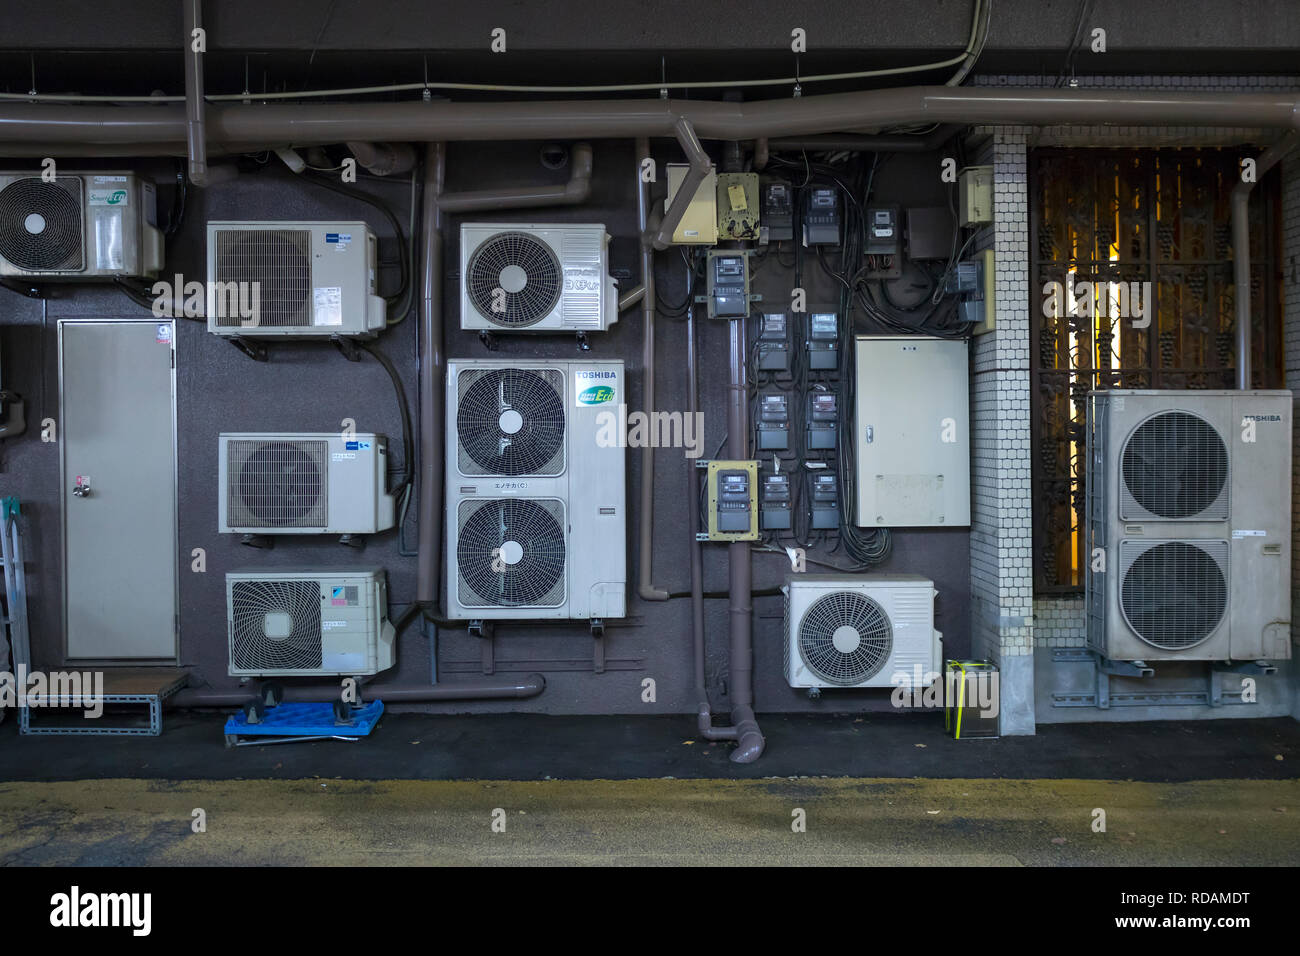 Kumamoto, Japan - November 10, 2018:  Outdoor electricity supply and air conditioning units in Kumamoto - Stock Image